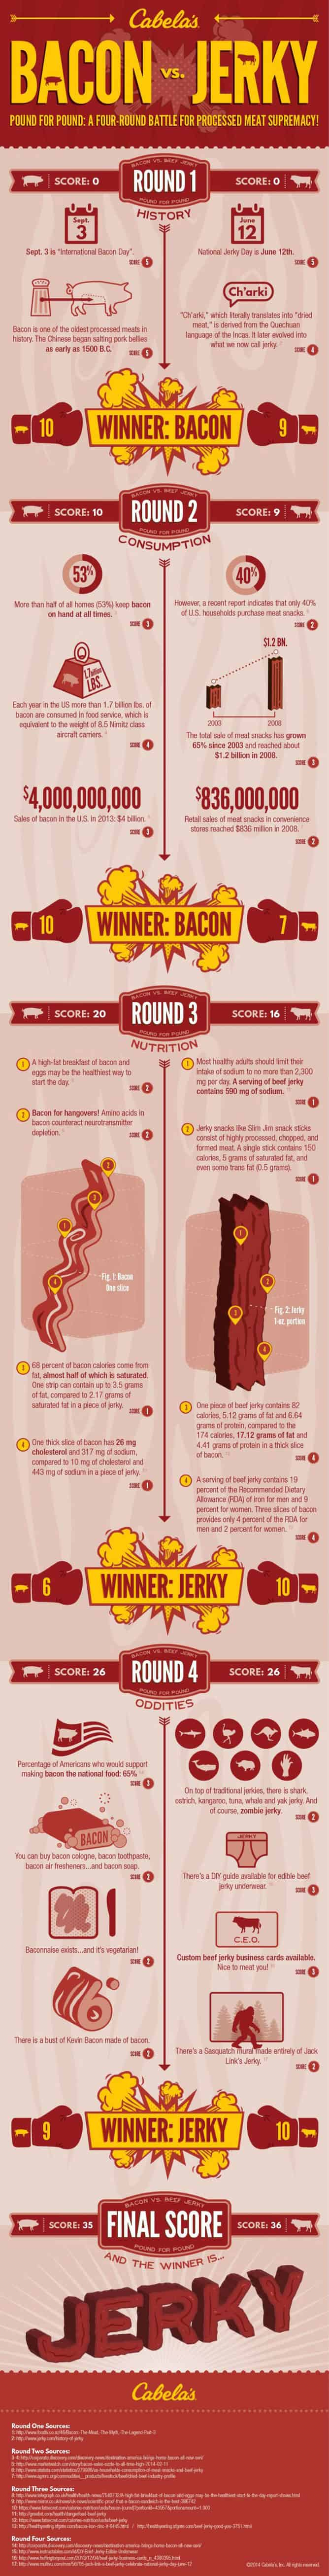 Infographic pitting bacon vs jerky for processed meat supremacy.